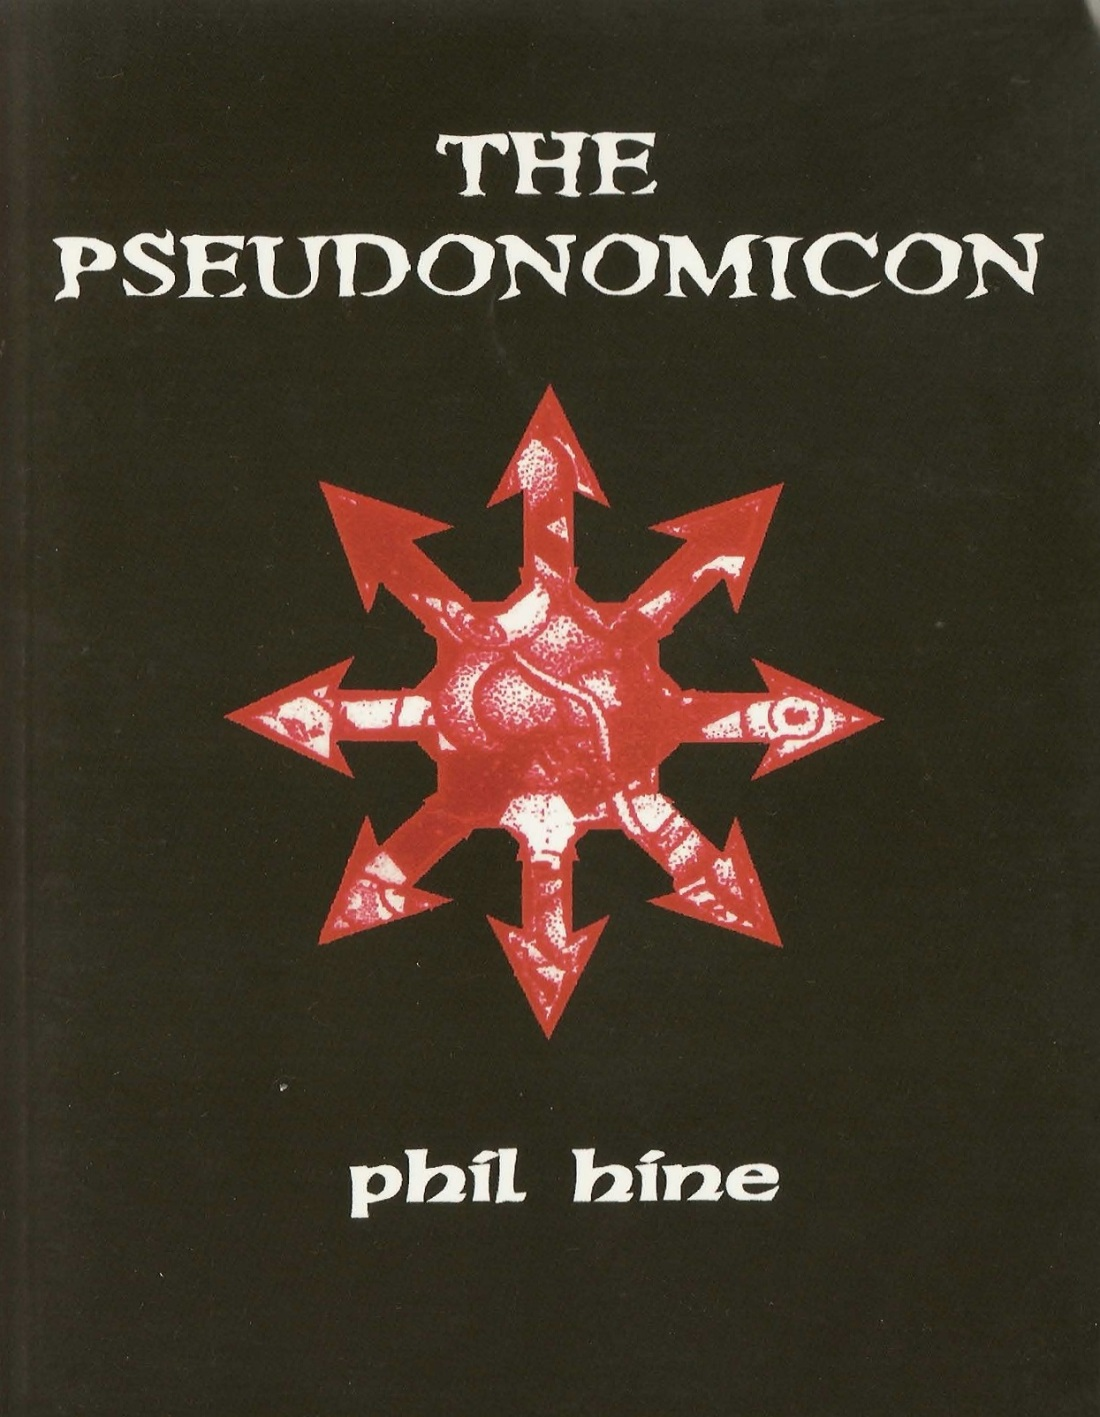 pseudonomicon phil hine.jpg